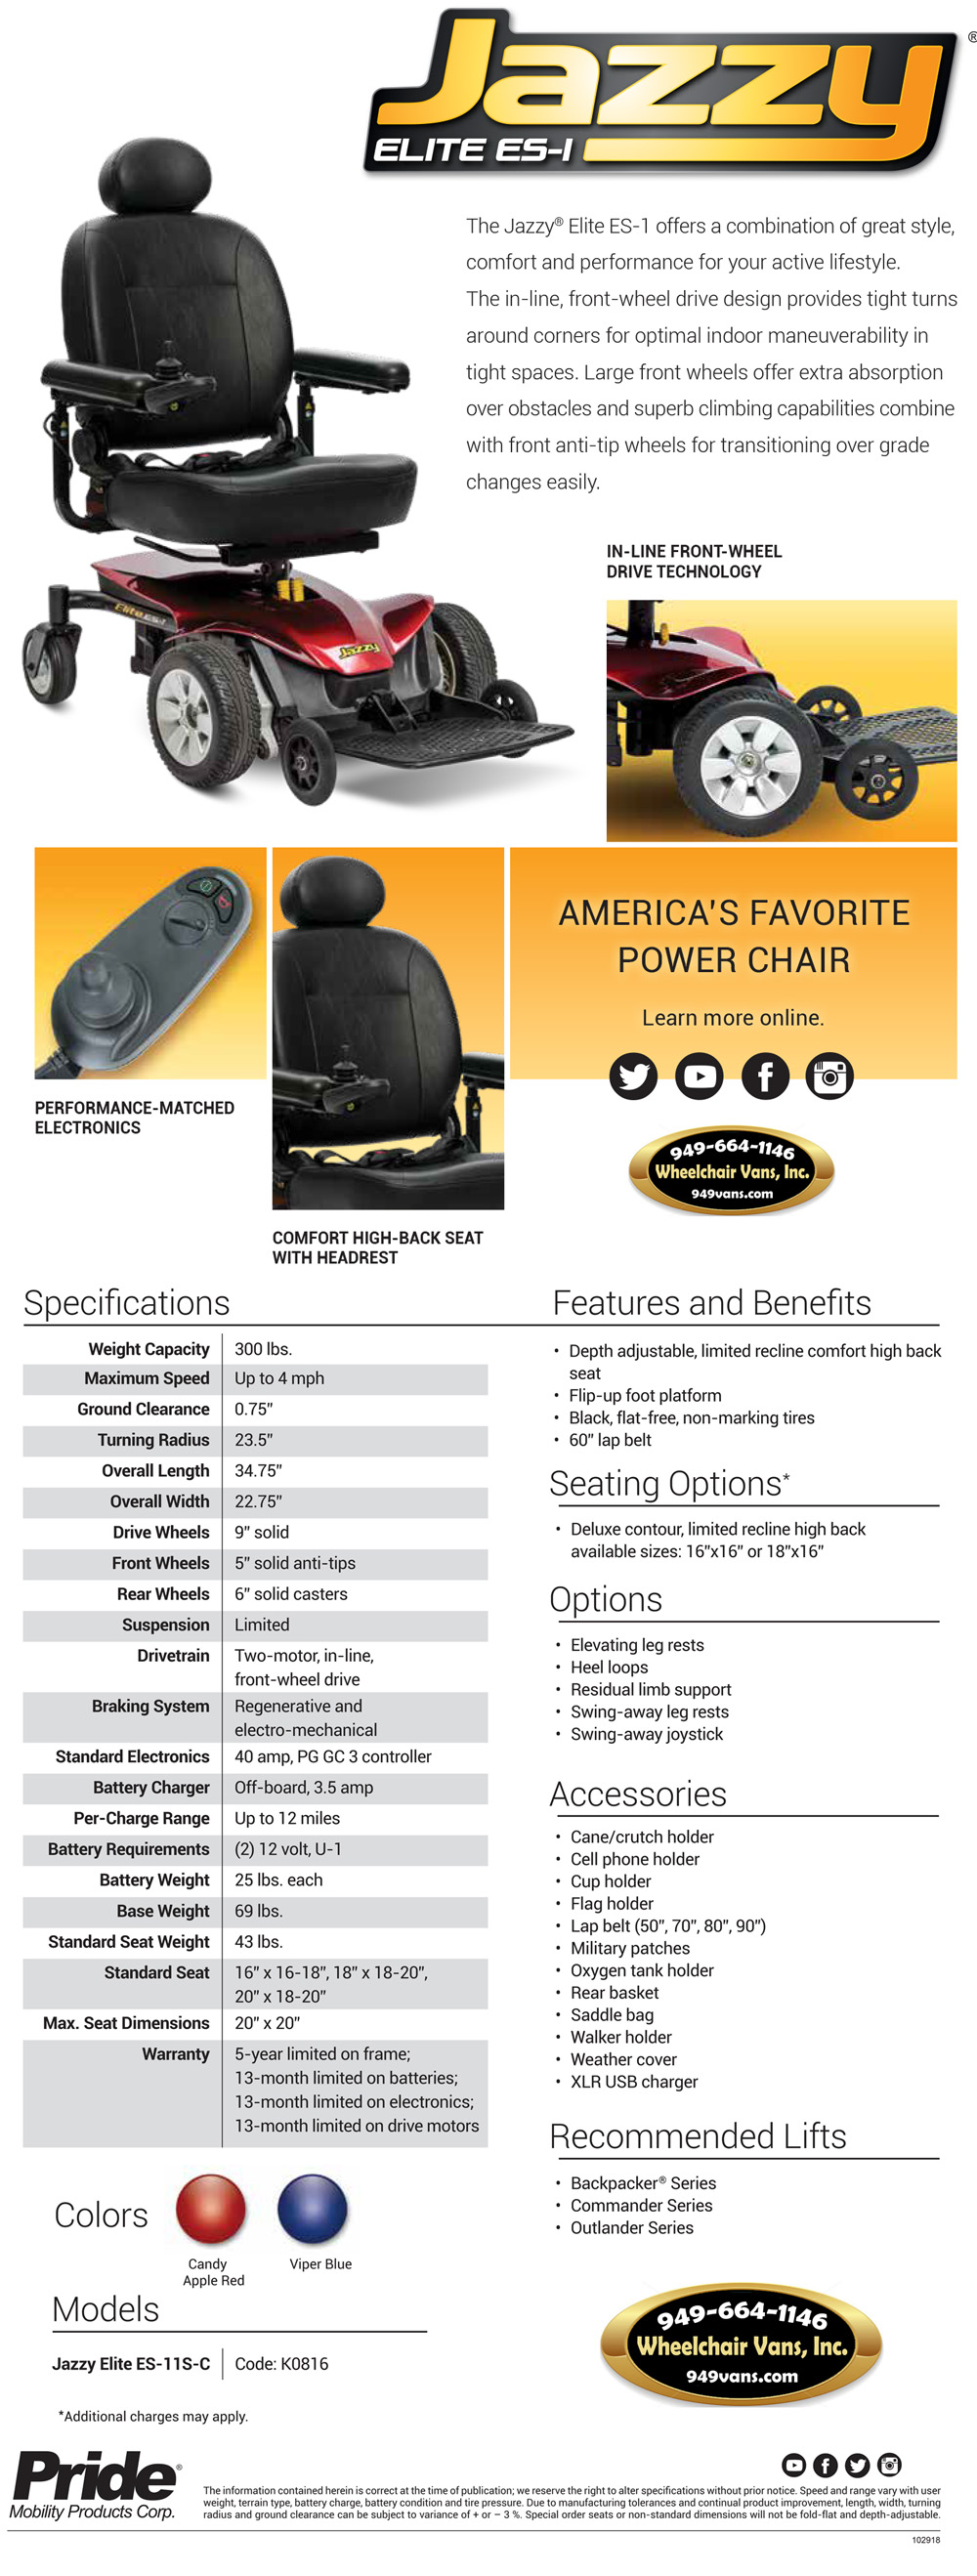 Best Prices on Pride Mobility Jazzy Elite ES 1 Electric Wheelchair Sales Event